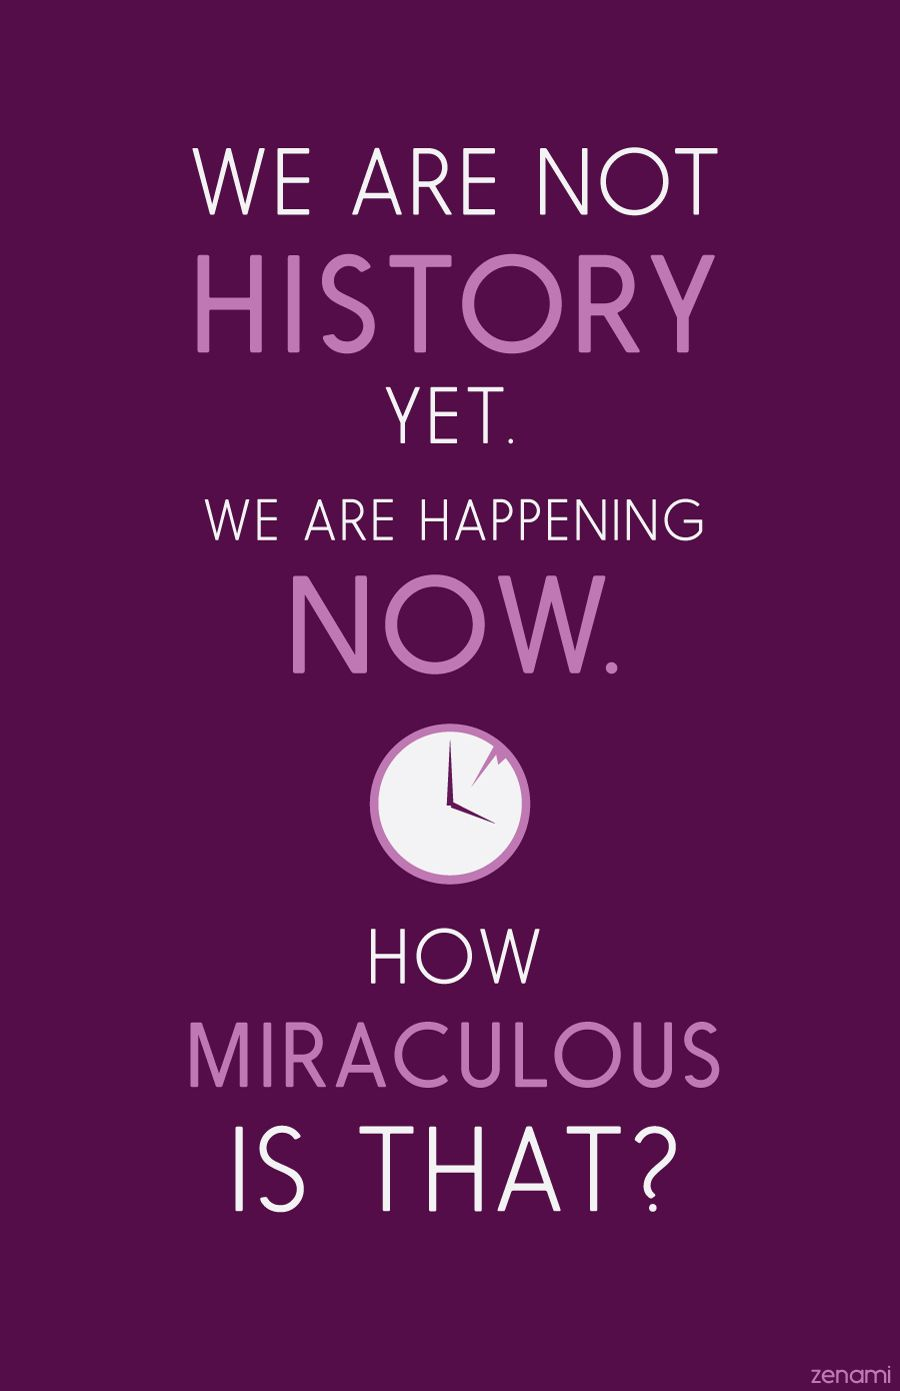 We are not history yet. We are happening not. How miraculous ...